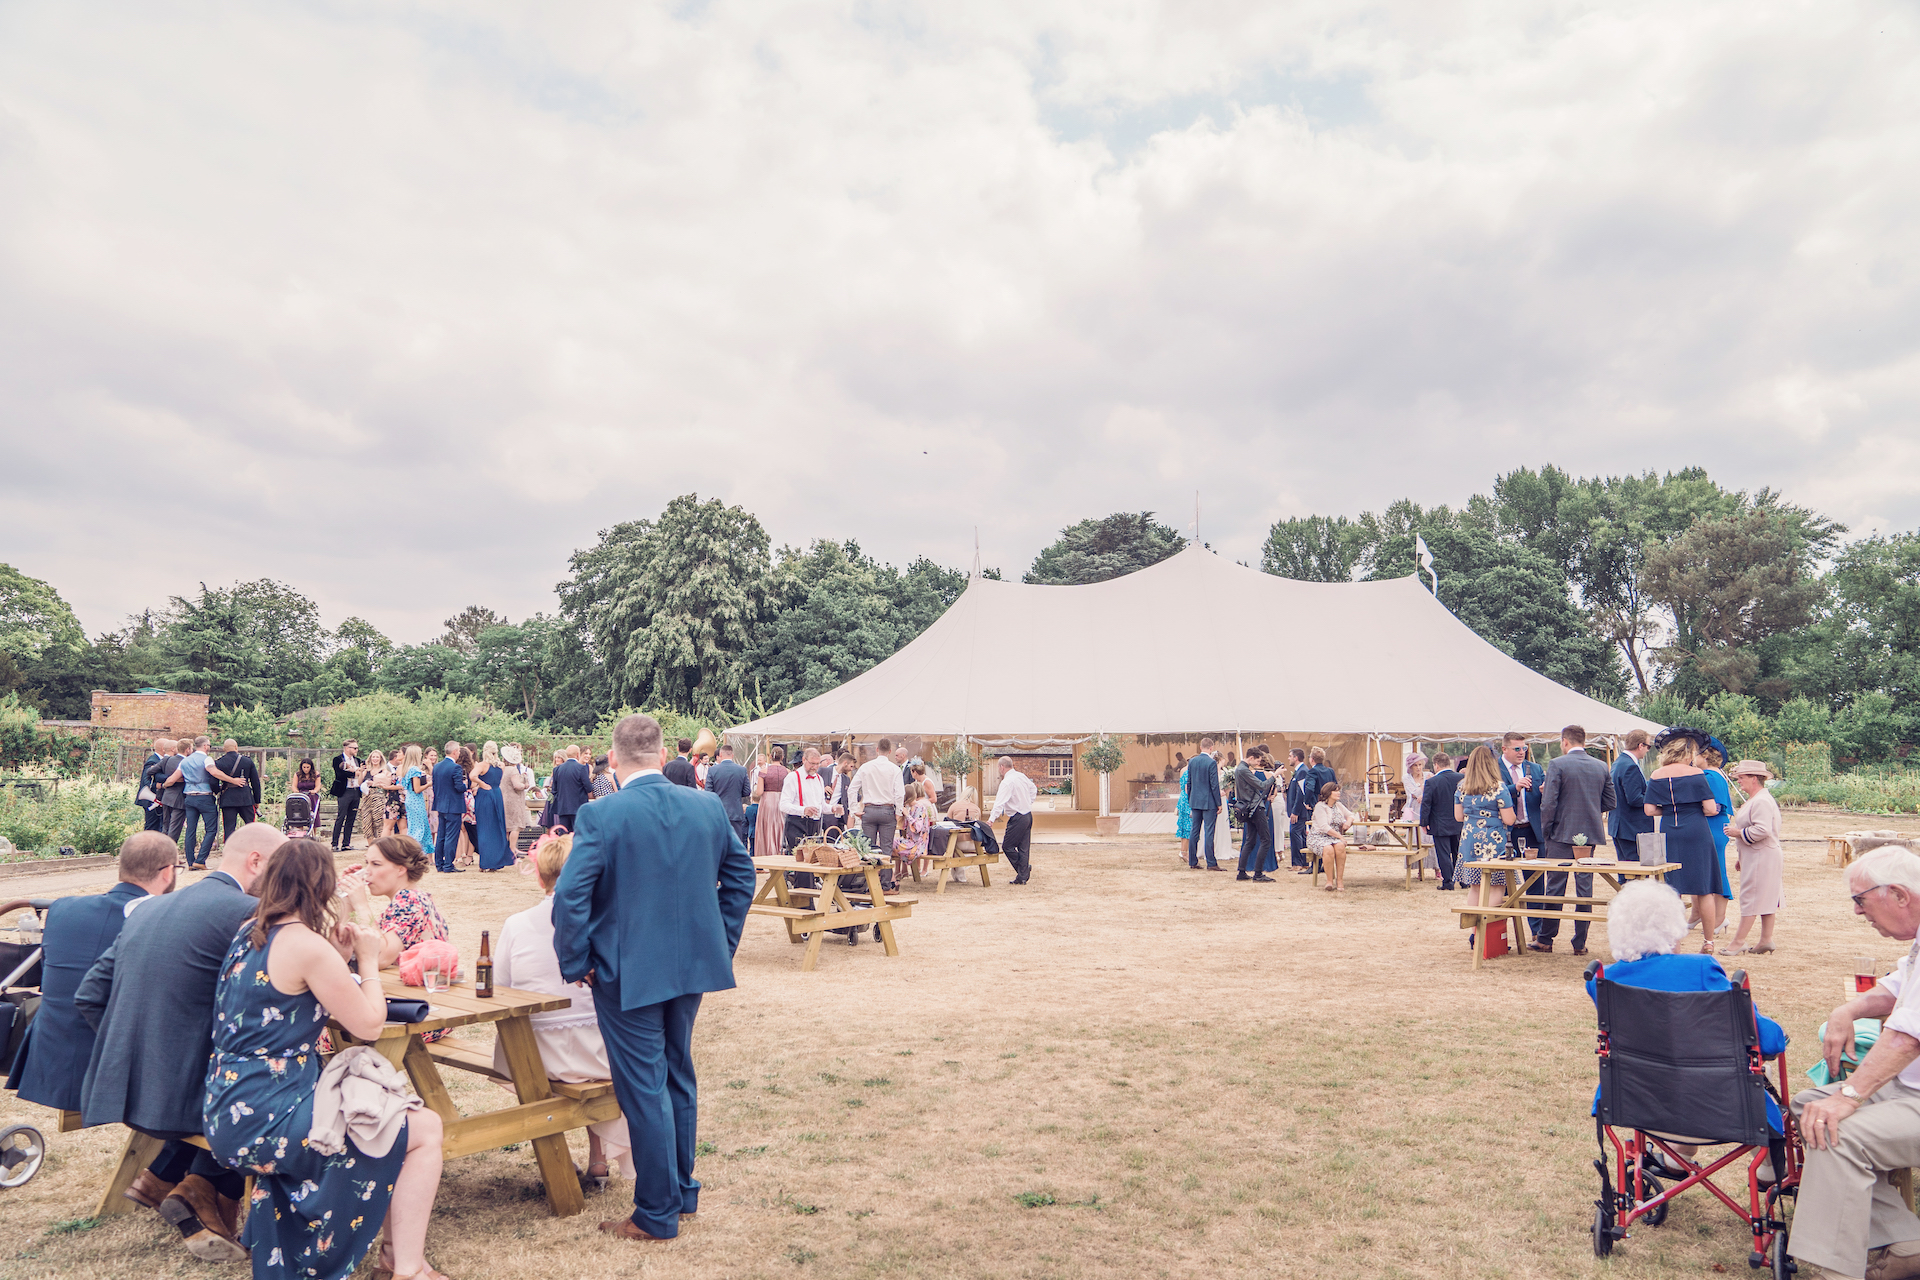 PapaKåta couple Louise & Alex's Sperry Wedding at Elford Hall Garden, Staffordshire captured by Jessica Raphael Photography- Sperry Tent exterior